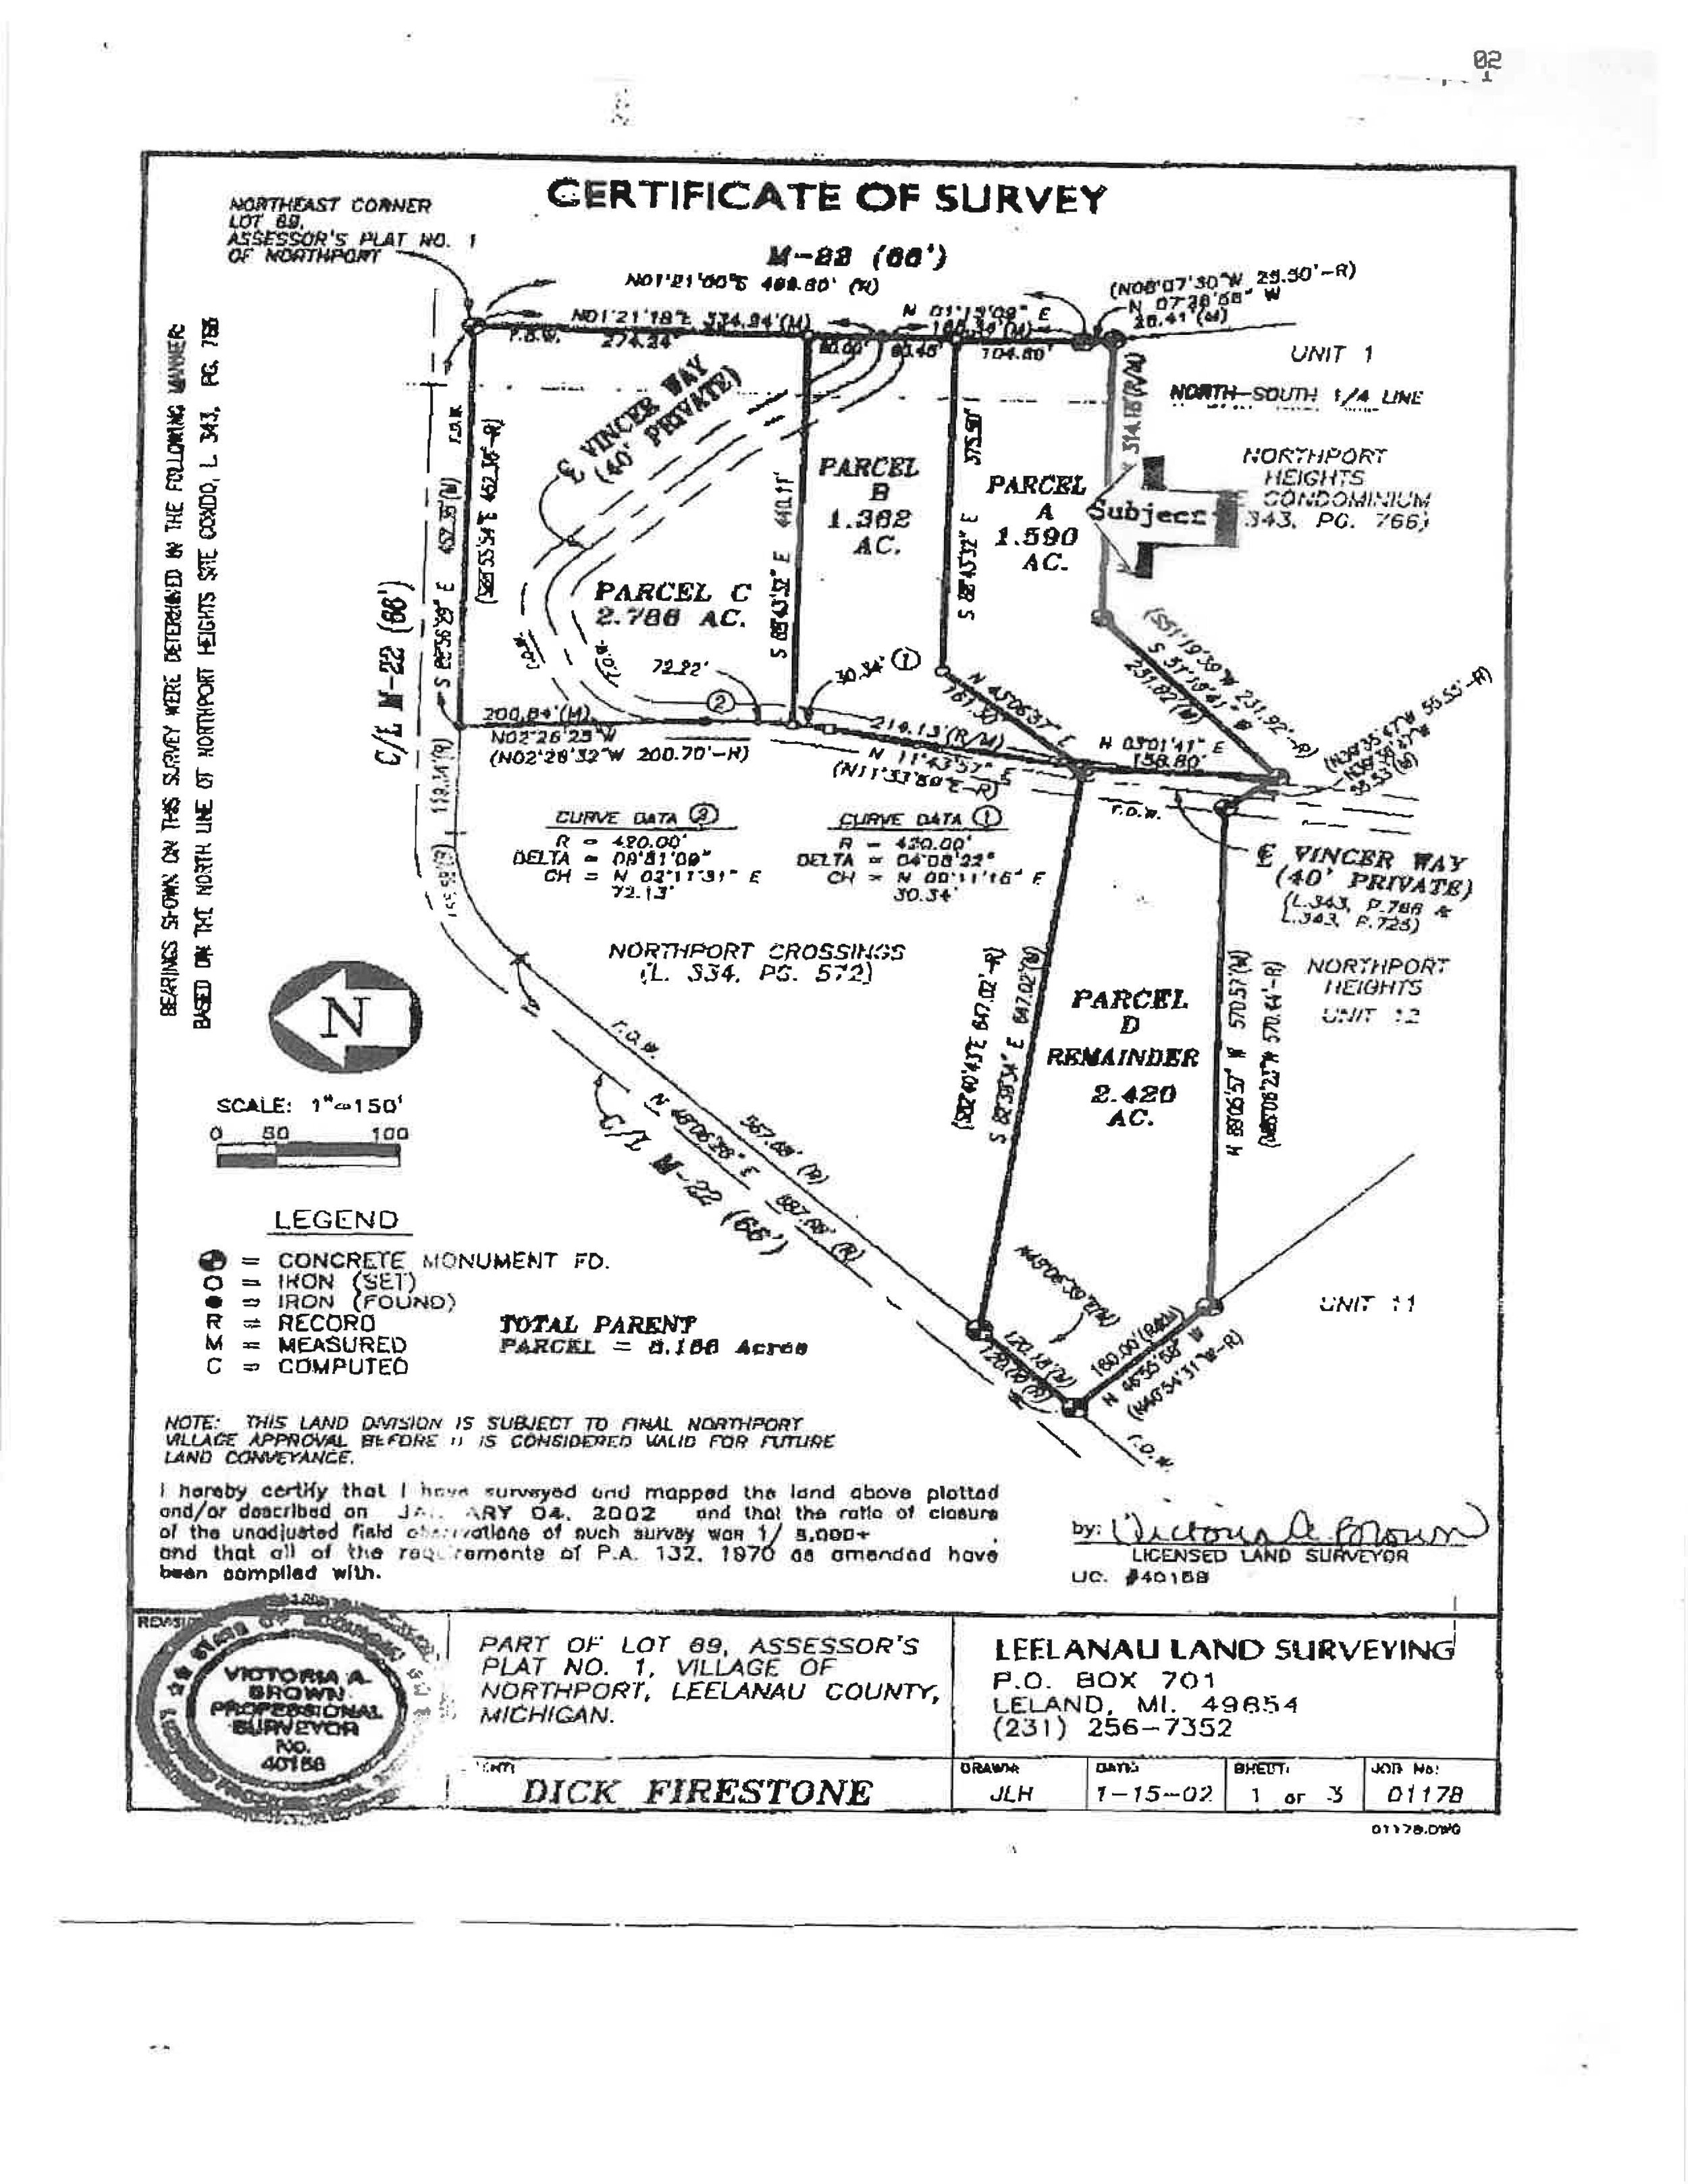 Parcel A - N Vincer Way, Northport - For Sale By Oltersdorf Realty LLC - Marketing Packet_Page_05.jpg